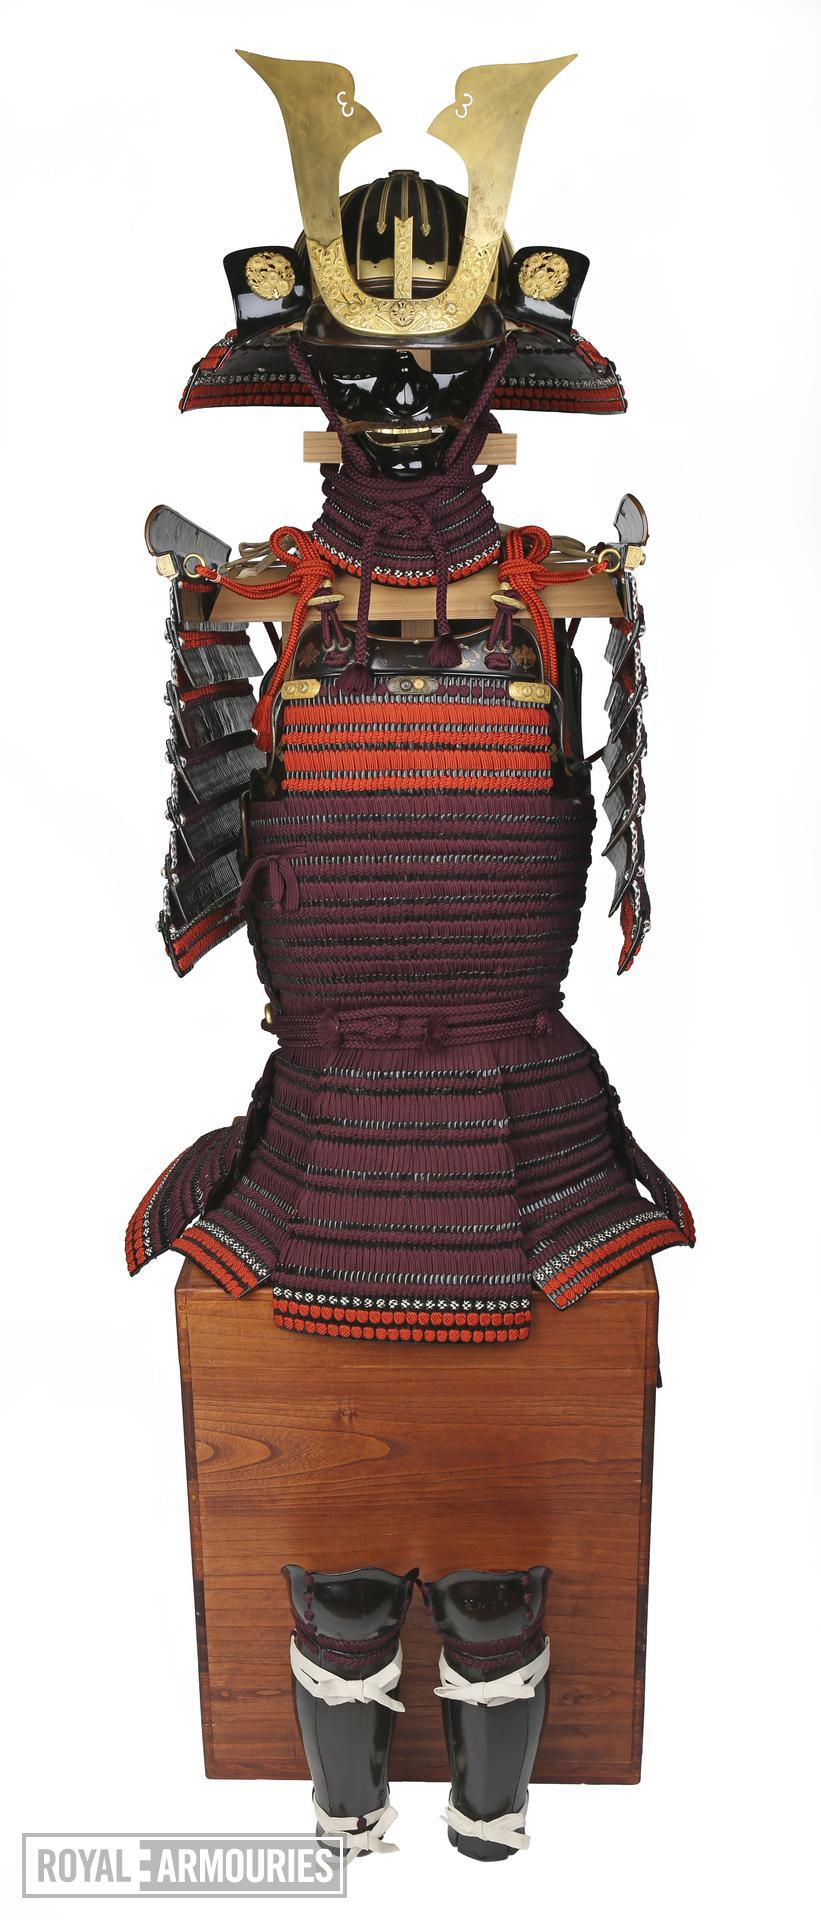 Armour (domaru) presented to King James I by Tokugawa Hidetada in 1613. Japanese, about 1610. Made by Iwai Yozaemon of Nambu (XXVIA.1)